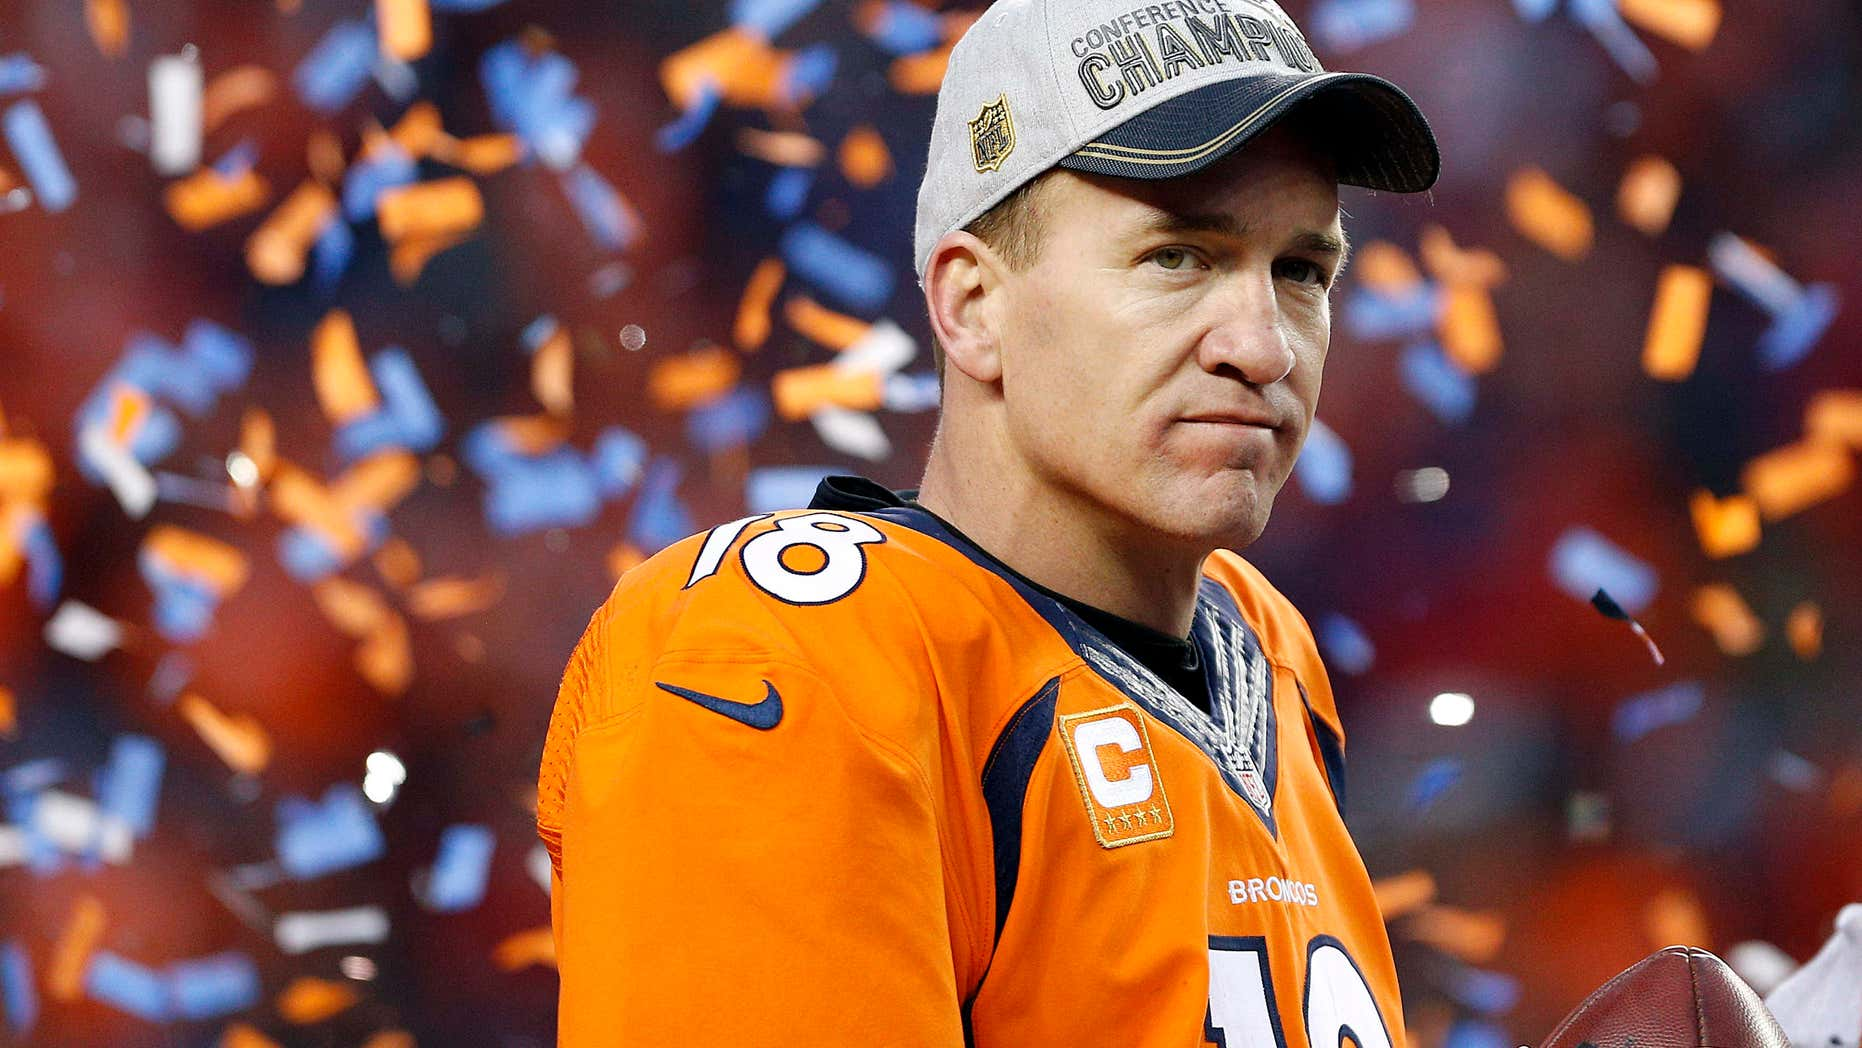 Jan. 24, 2016: Denver Broncos quarterback Peyton Manning watches the AFC championship trophy presentation following the NFL football AFC Championship game between the Denver Broncos and the New England Patriots,.